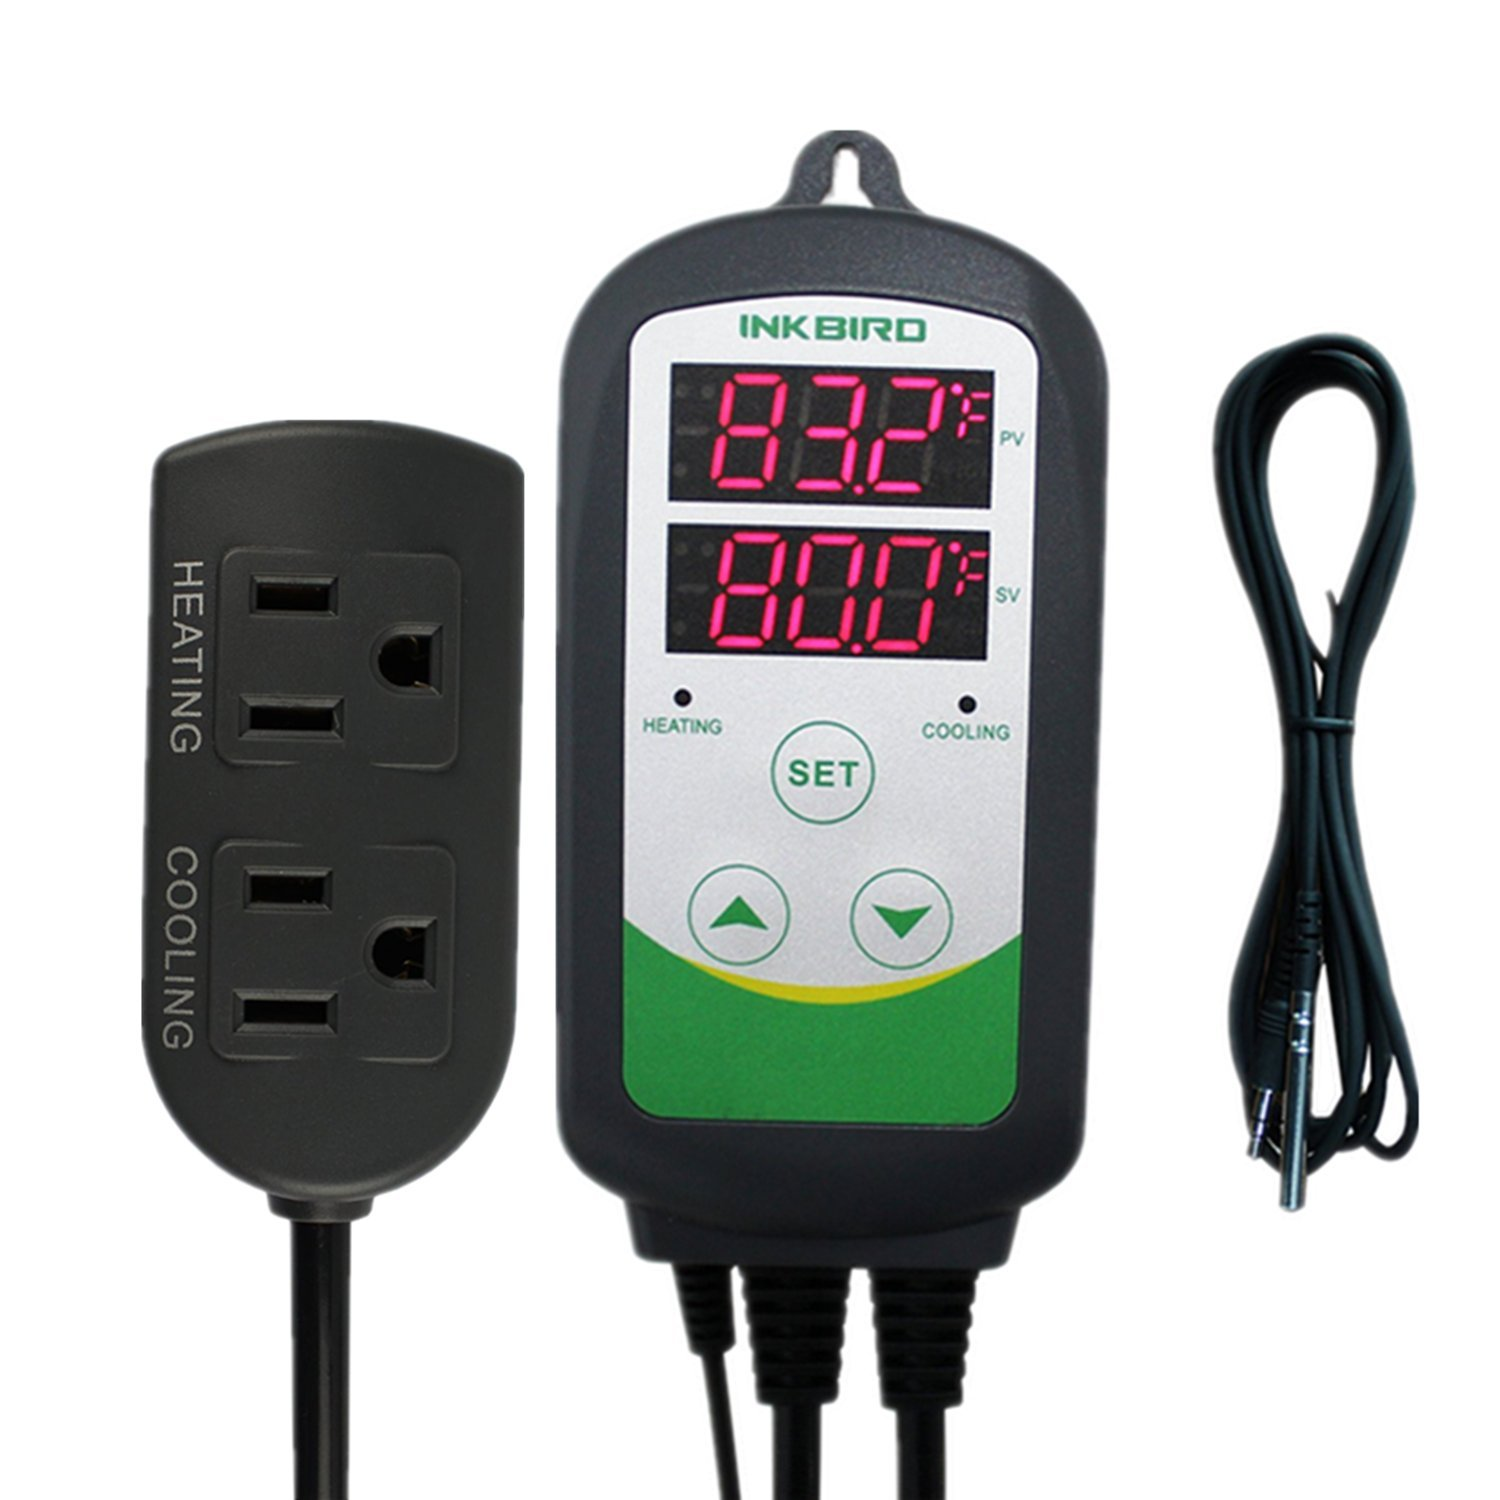 Incubator ect Inkbird Pre-Wired Digital Dual Stage Temperature Controller Outlet Thermostats 110V 1100W With 6.65ft DC Cord NTC Stainless Probe Sensor for Aquarium